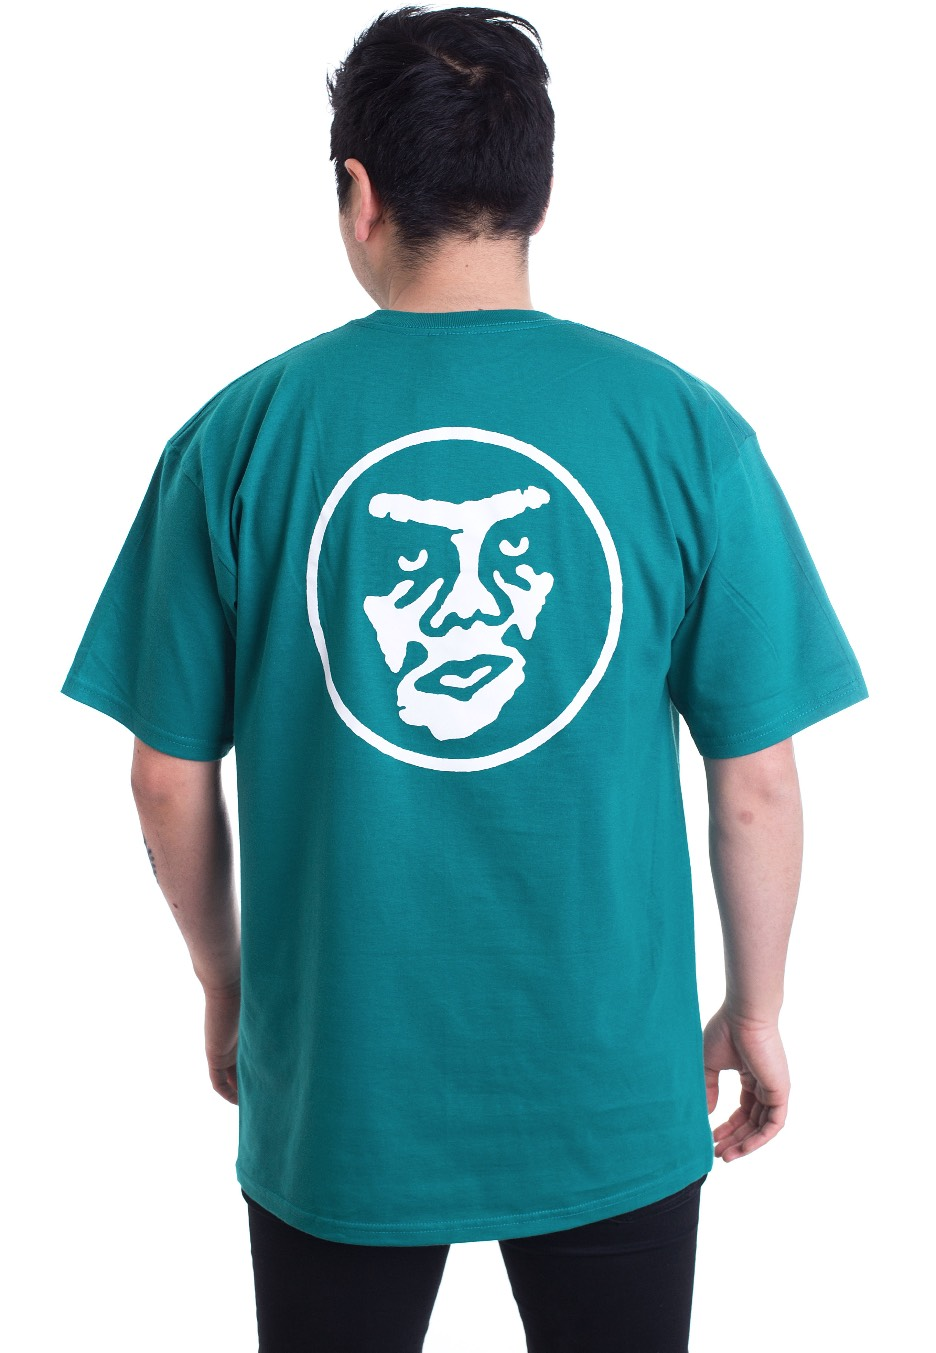 Obey Creeper Circle Teal T Shirt Streetwear Shop Impericon